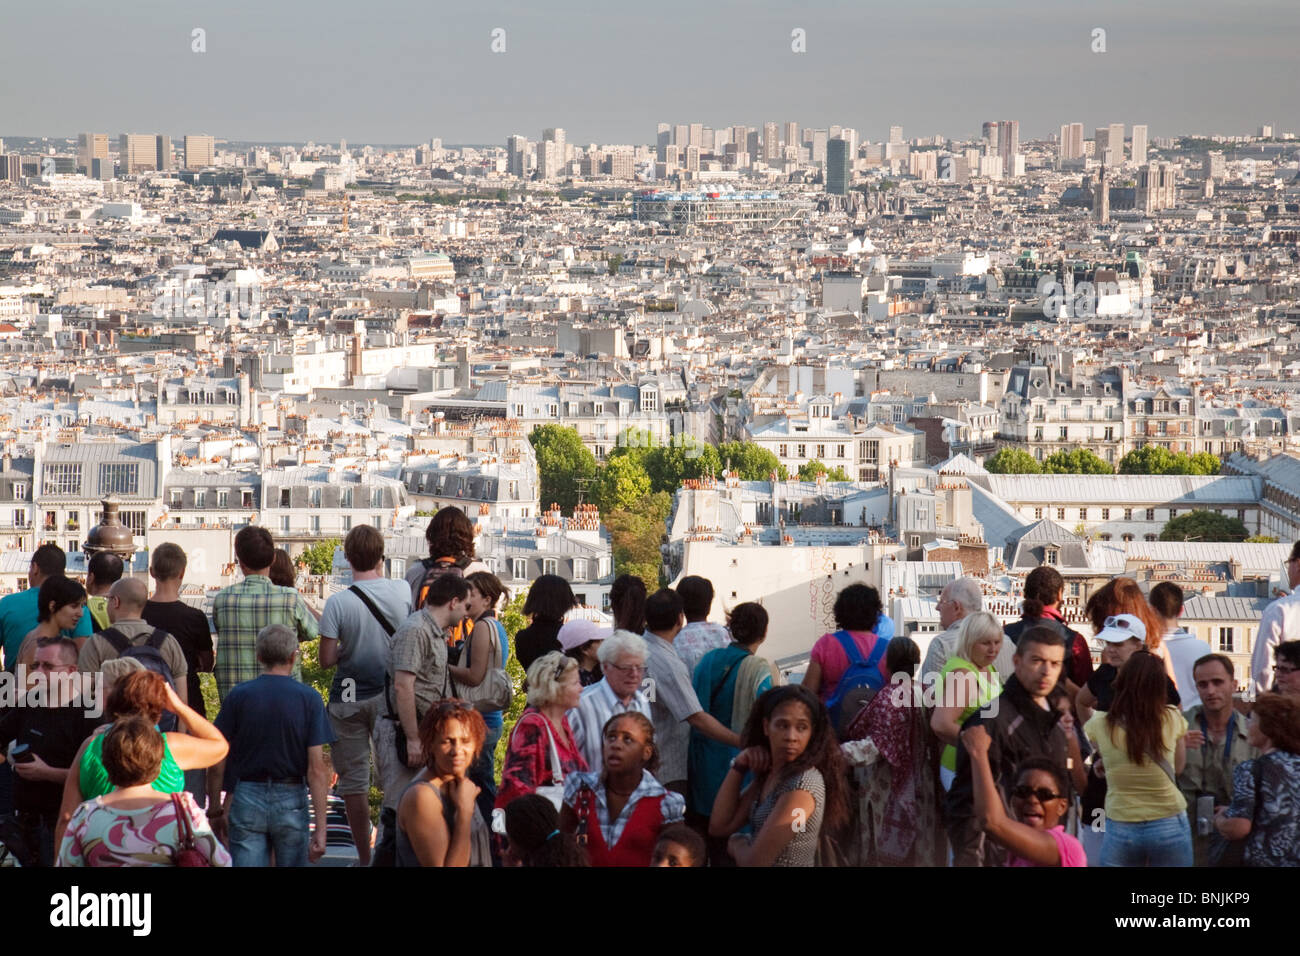 Crowds of  tourists look out at the view over Paris from the Basilique du Sacre Coeur, Montmartre, Paris, France - Stock Image